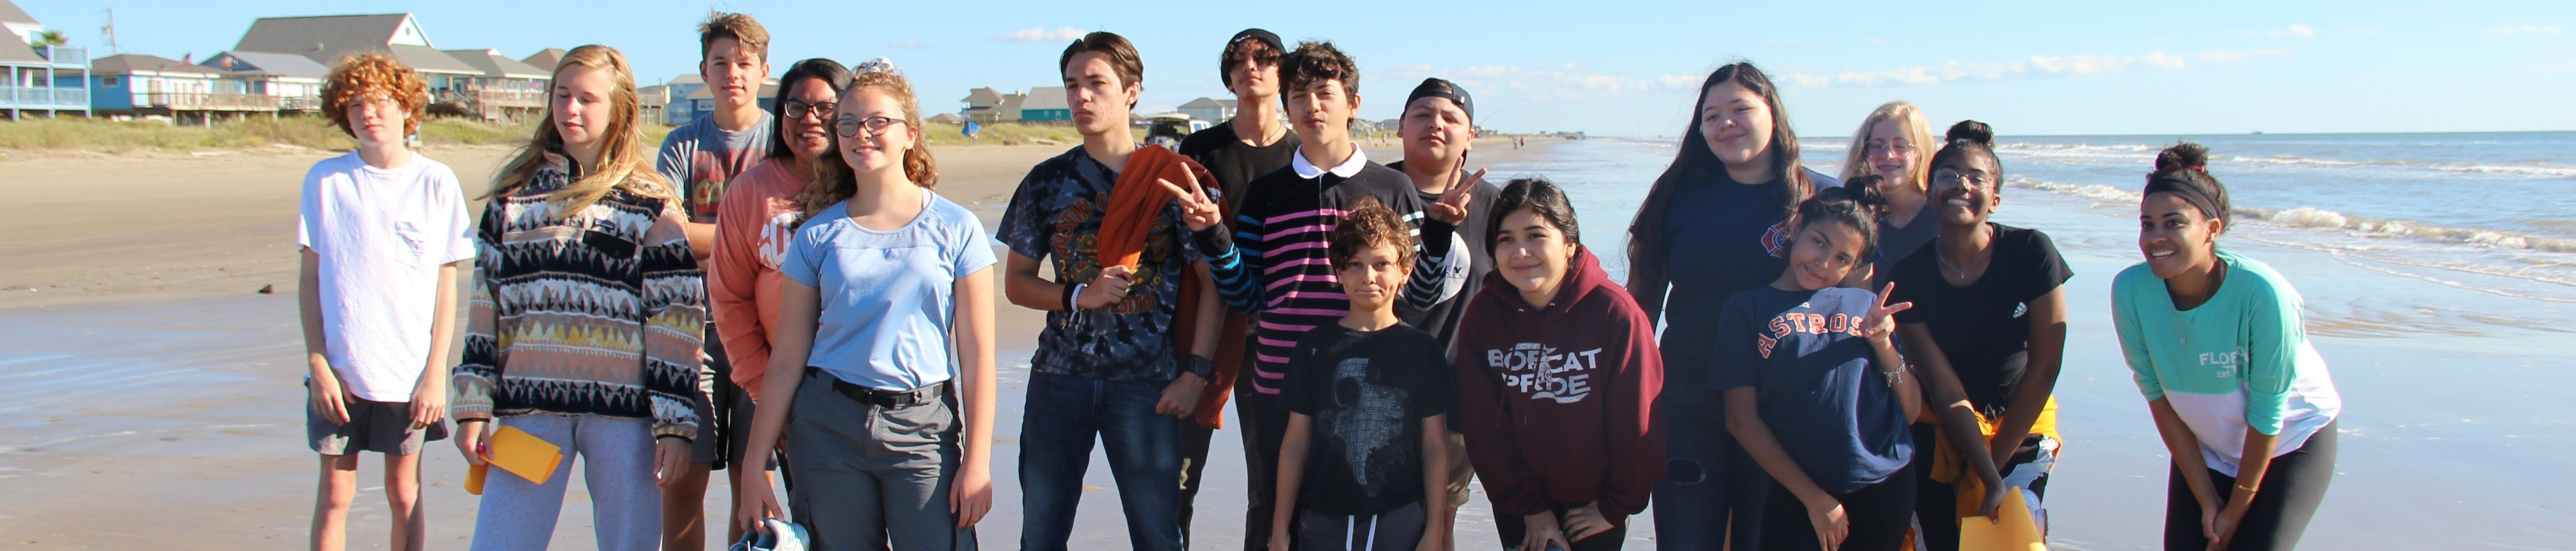 Youth Beach 2019 2 crop